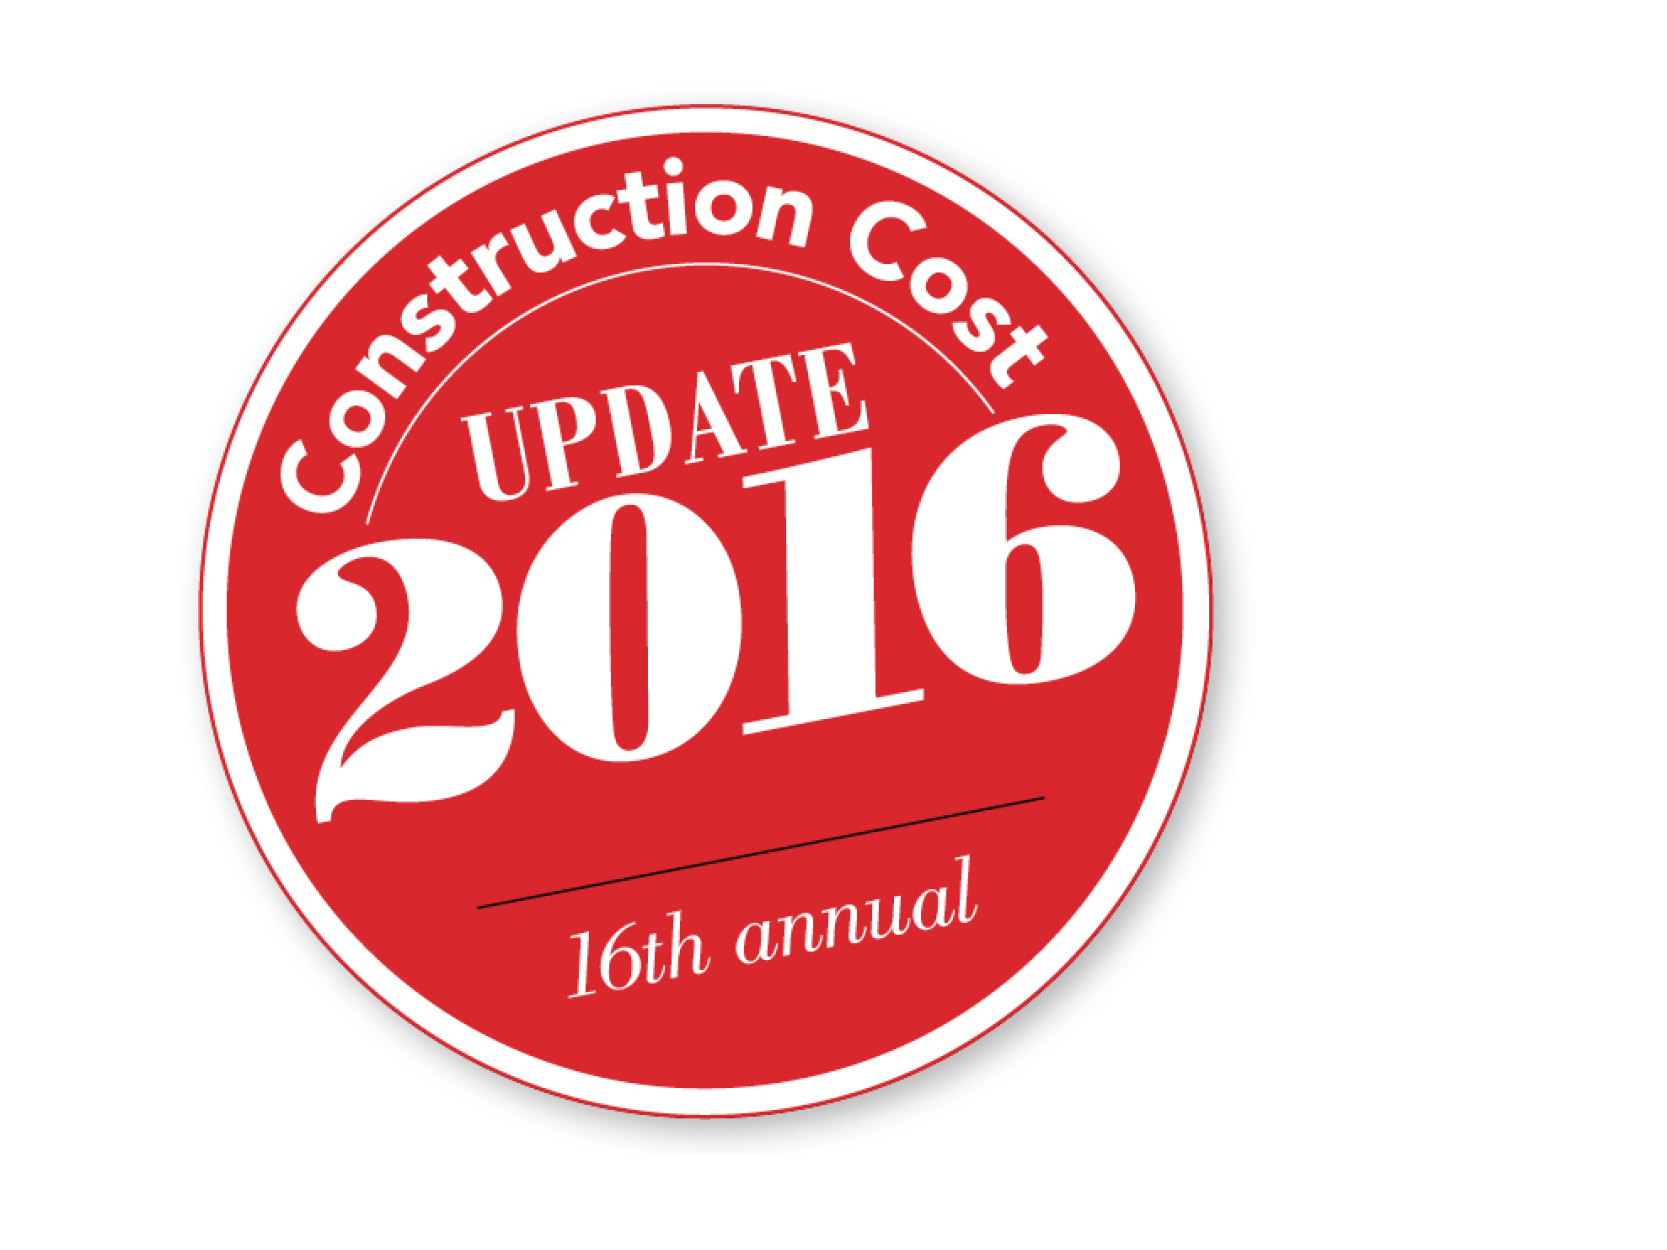 Preview of the resource library item for Kirksey's 16th Annual Construction Cost Update